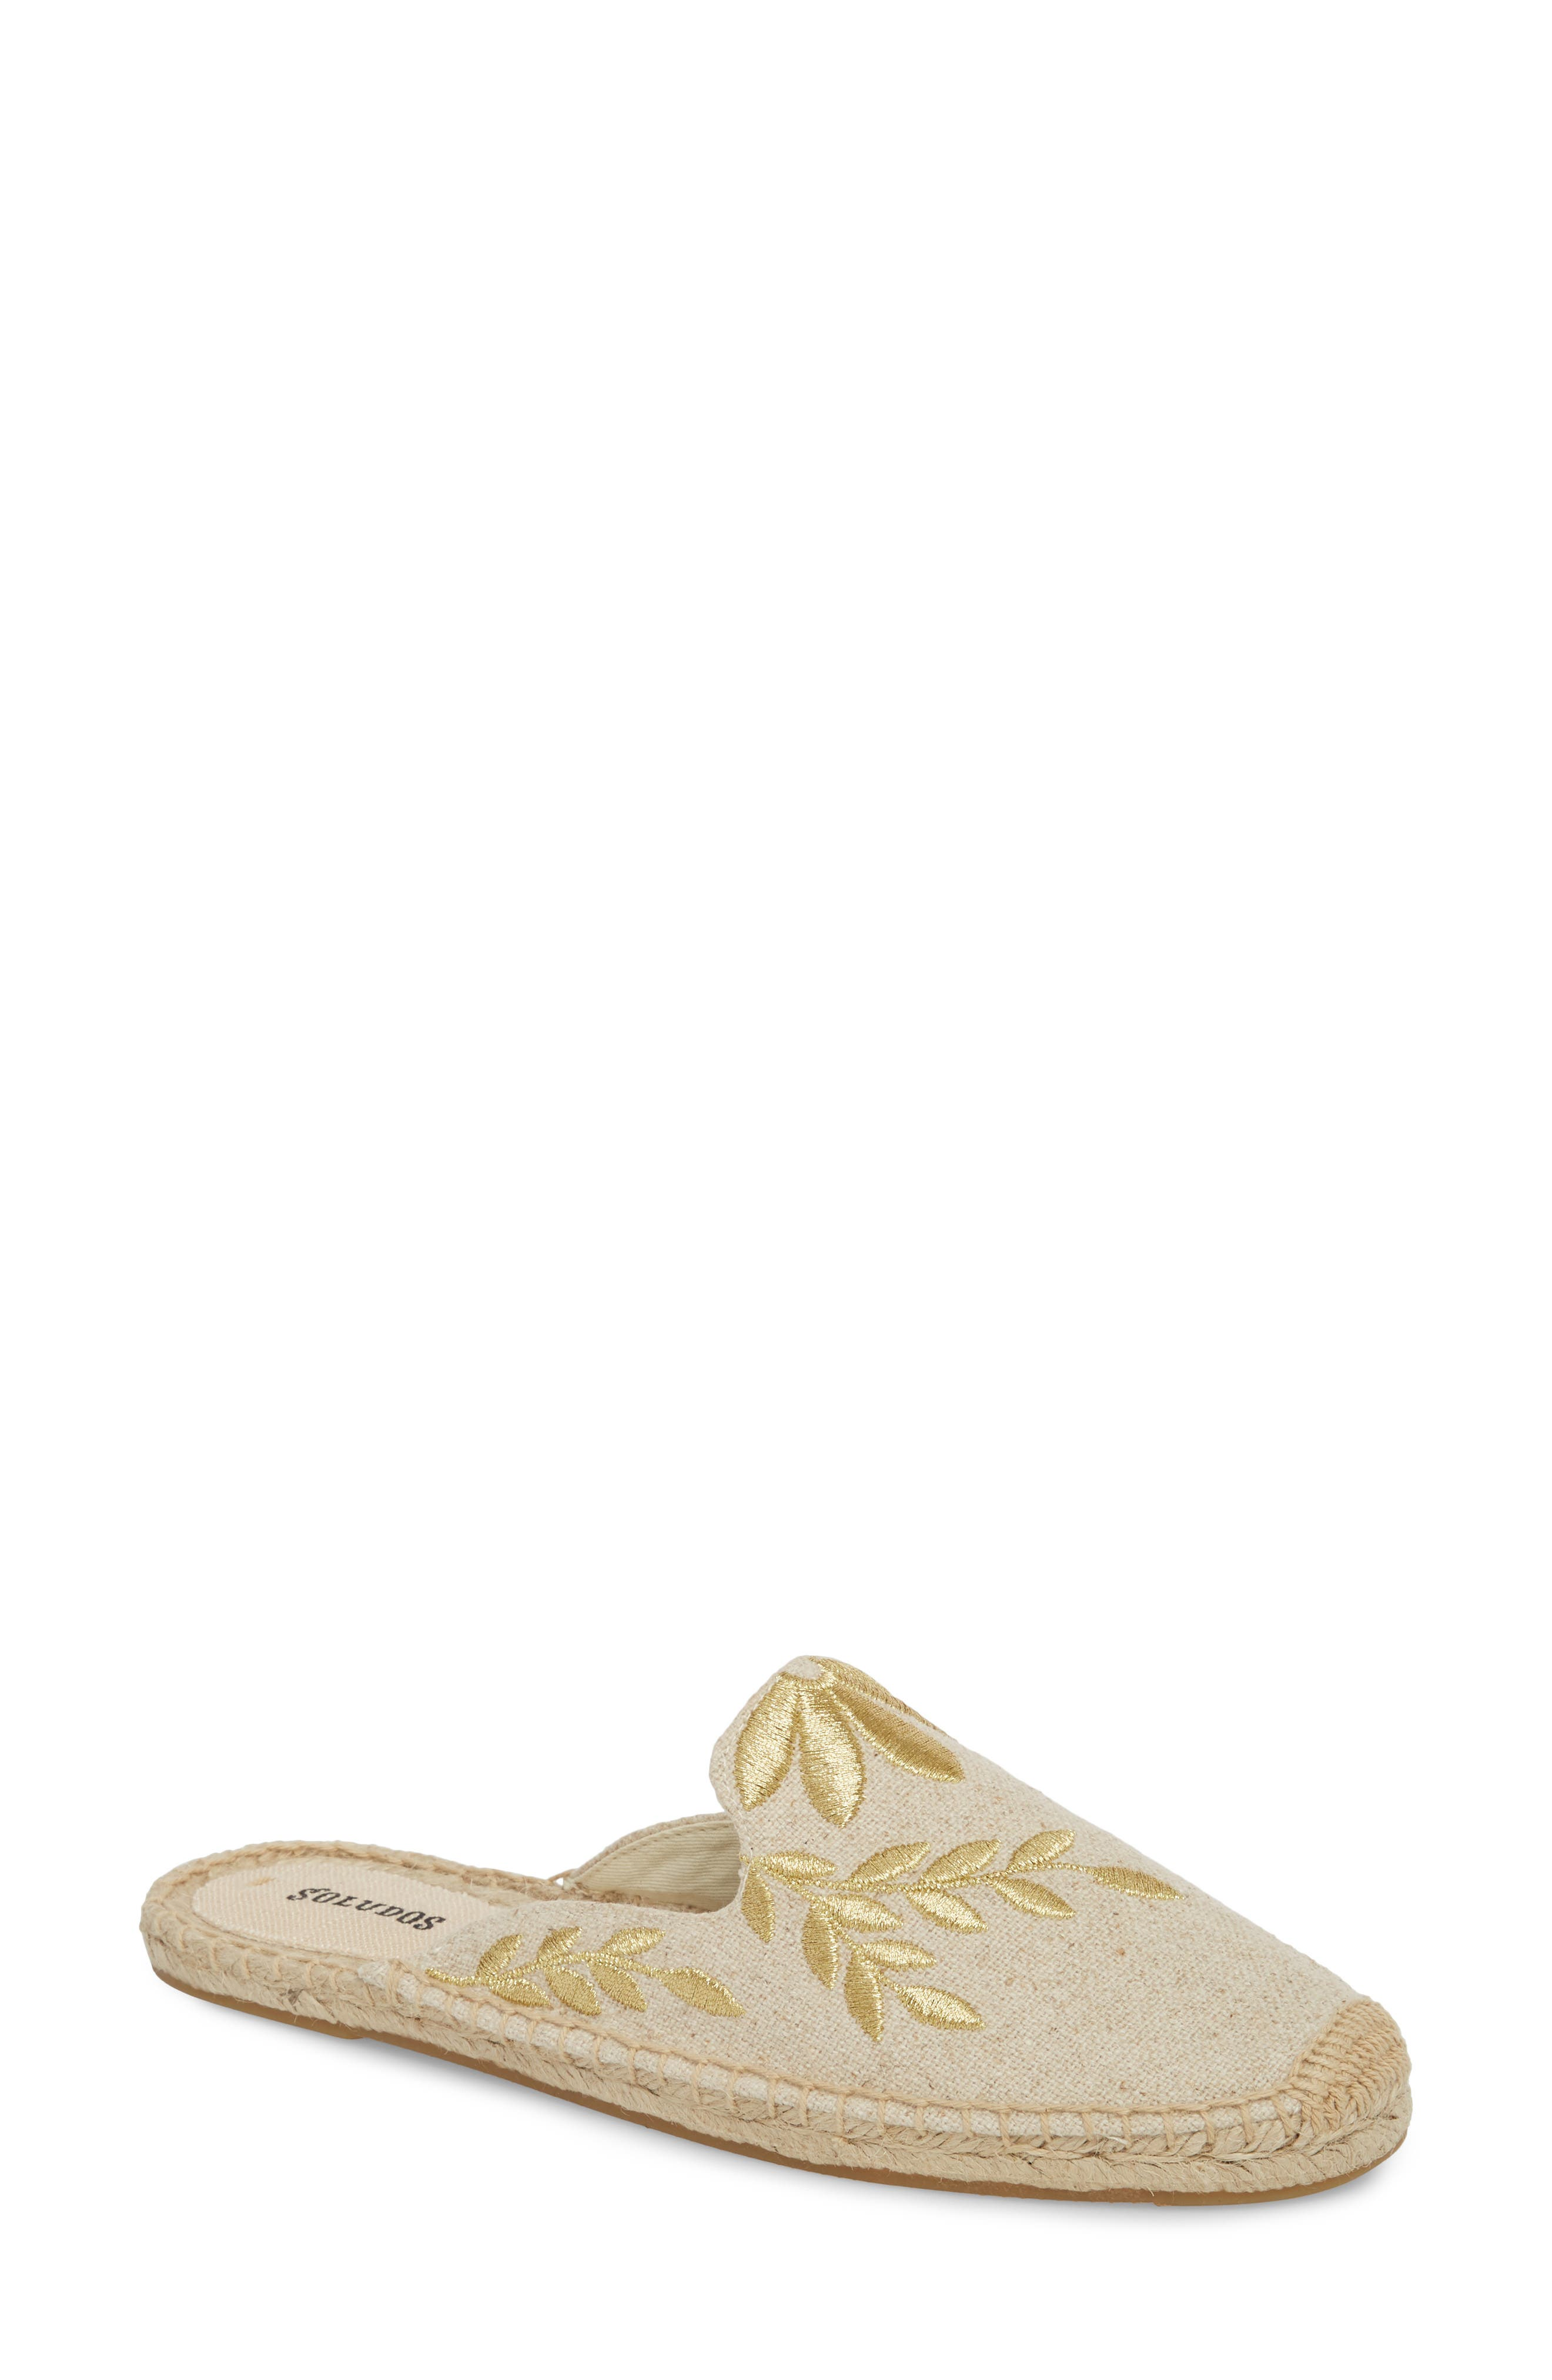 Leaf Embroidered Loafer Mule,                             Main thumbnail 1, color,